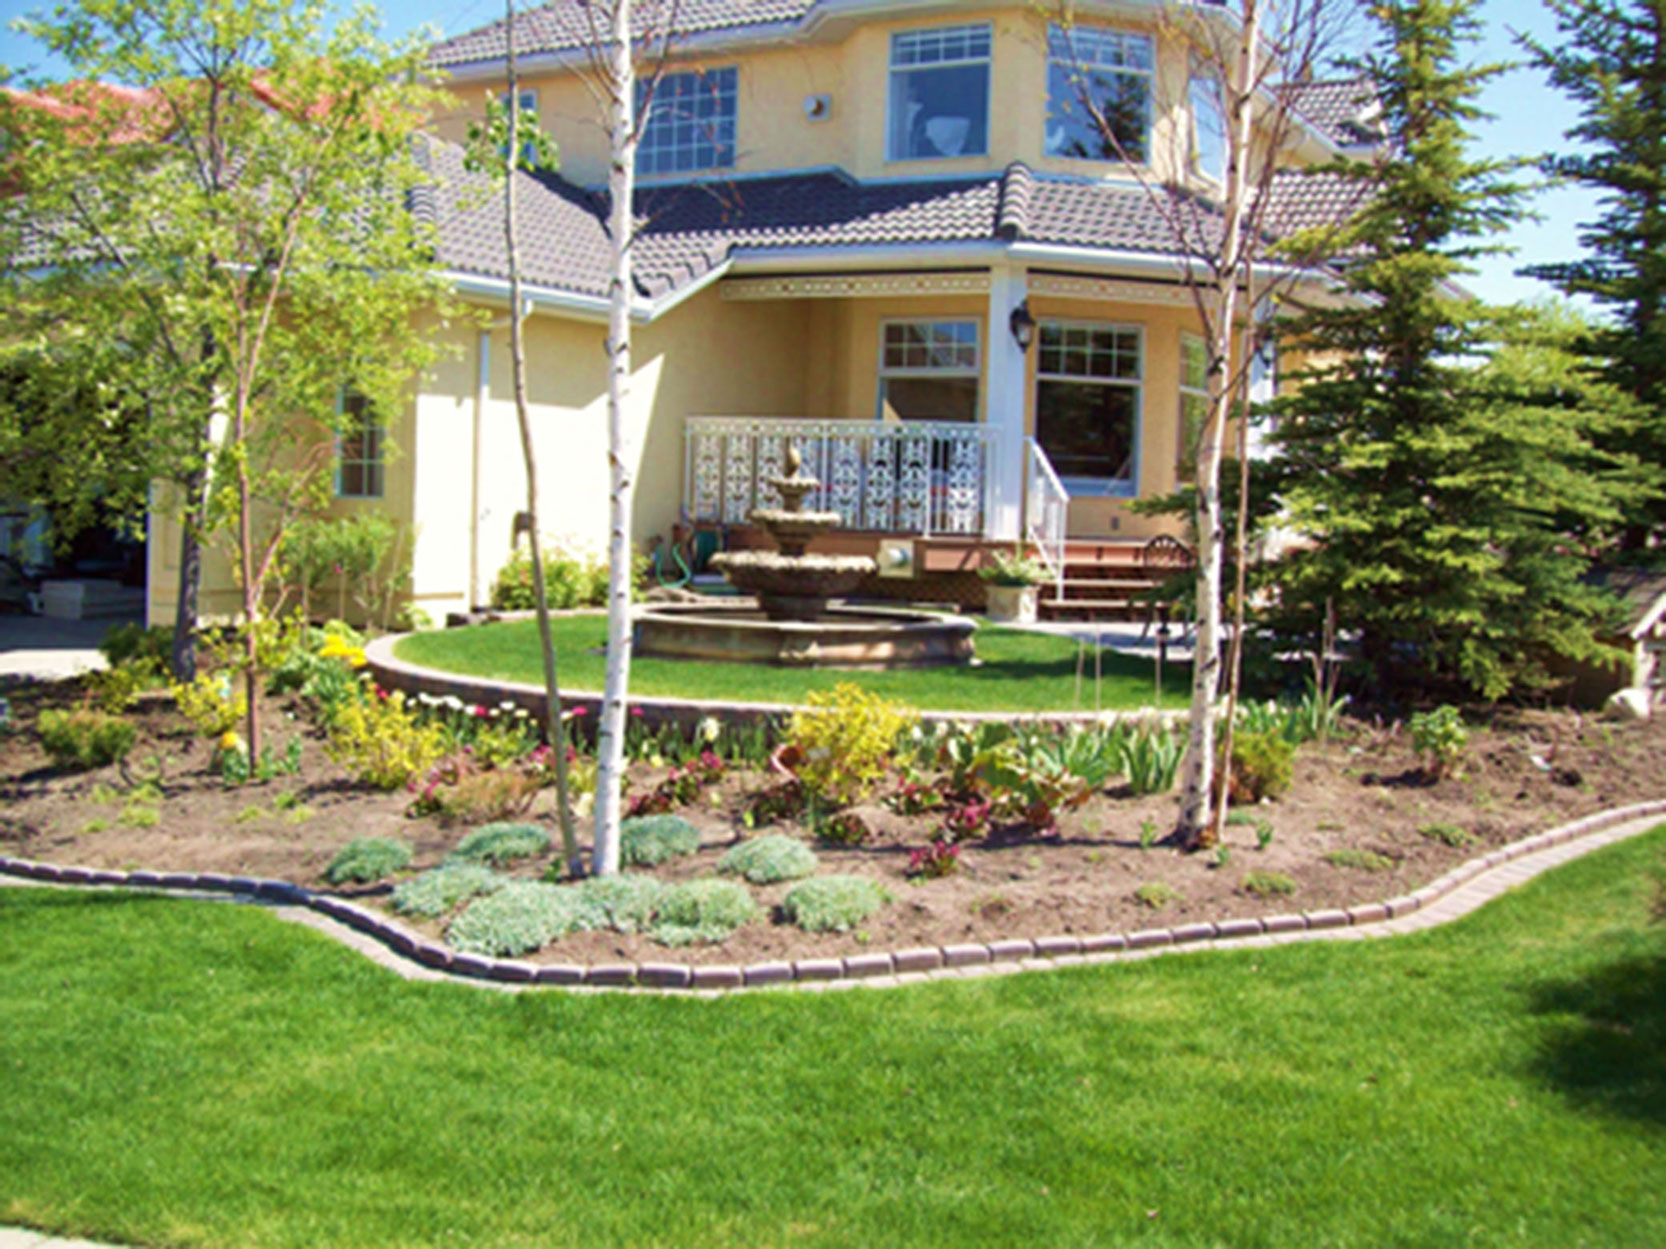 Backyard Oasis Yellow House By European Garden Design Calgary